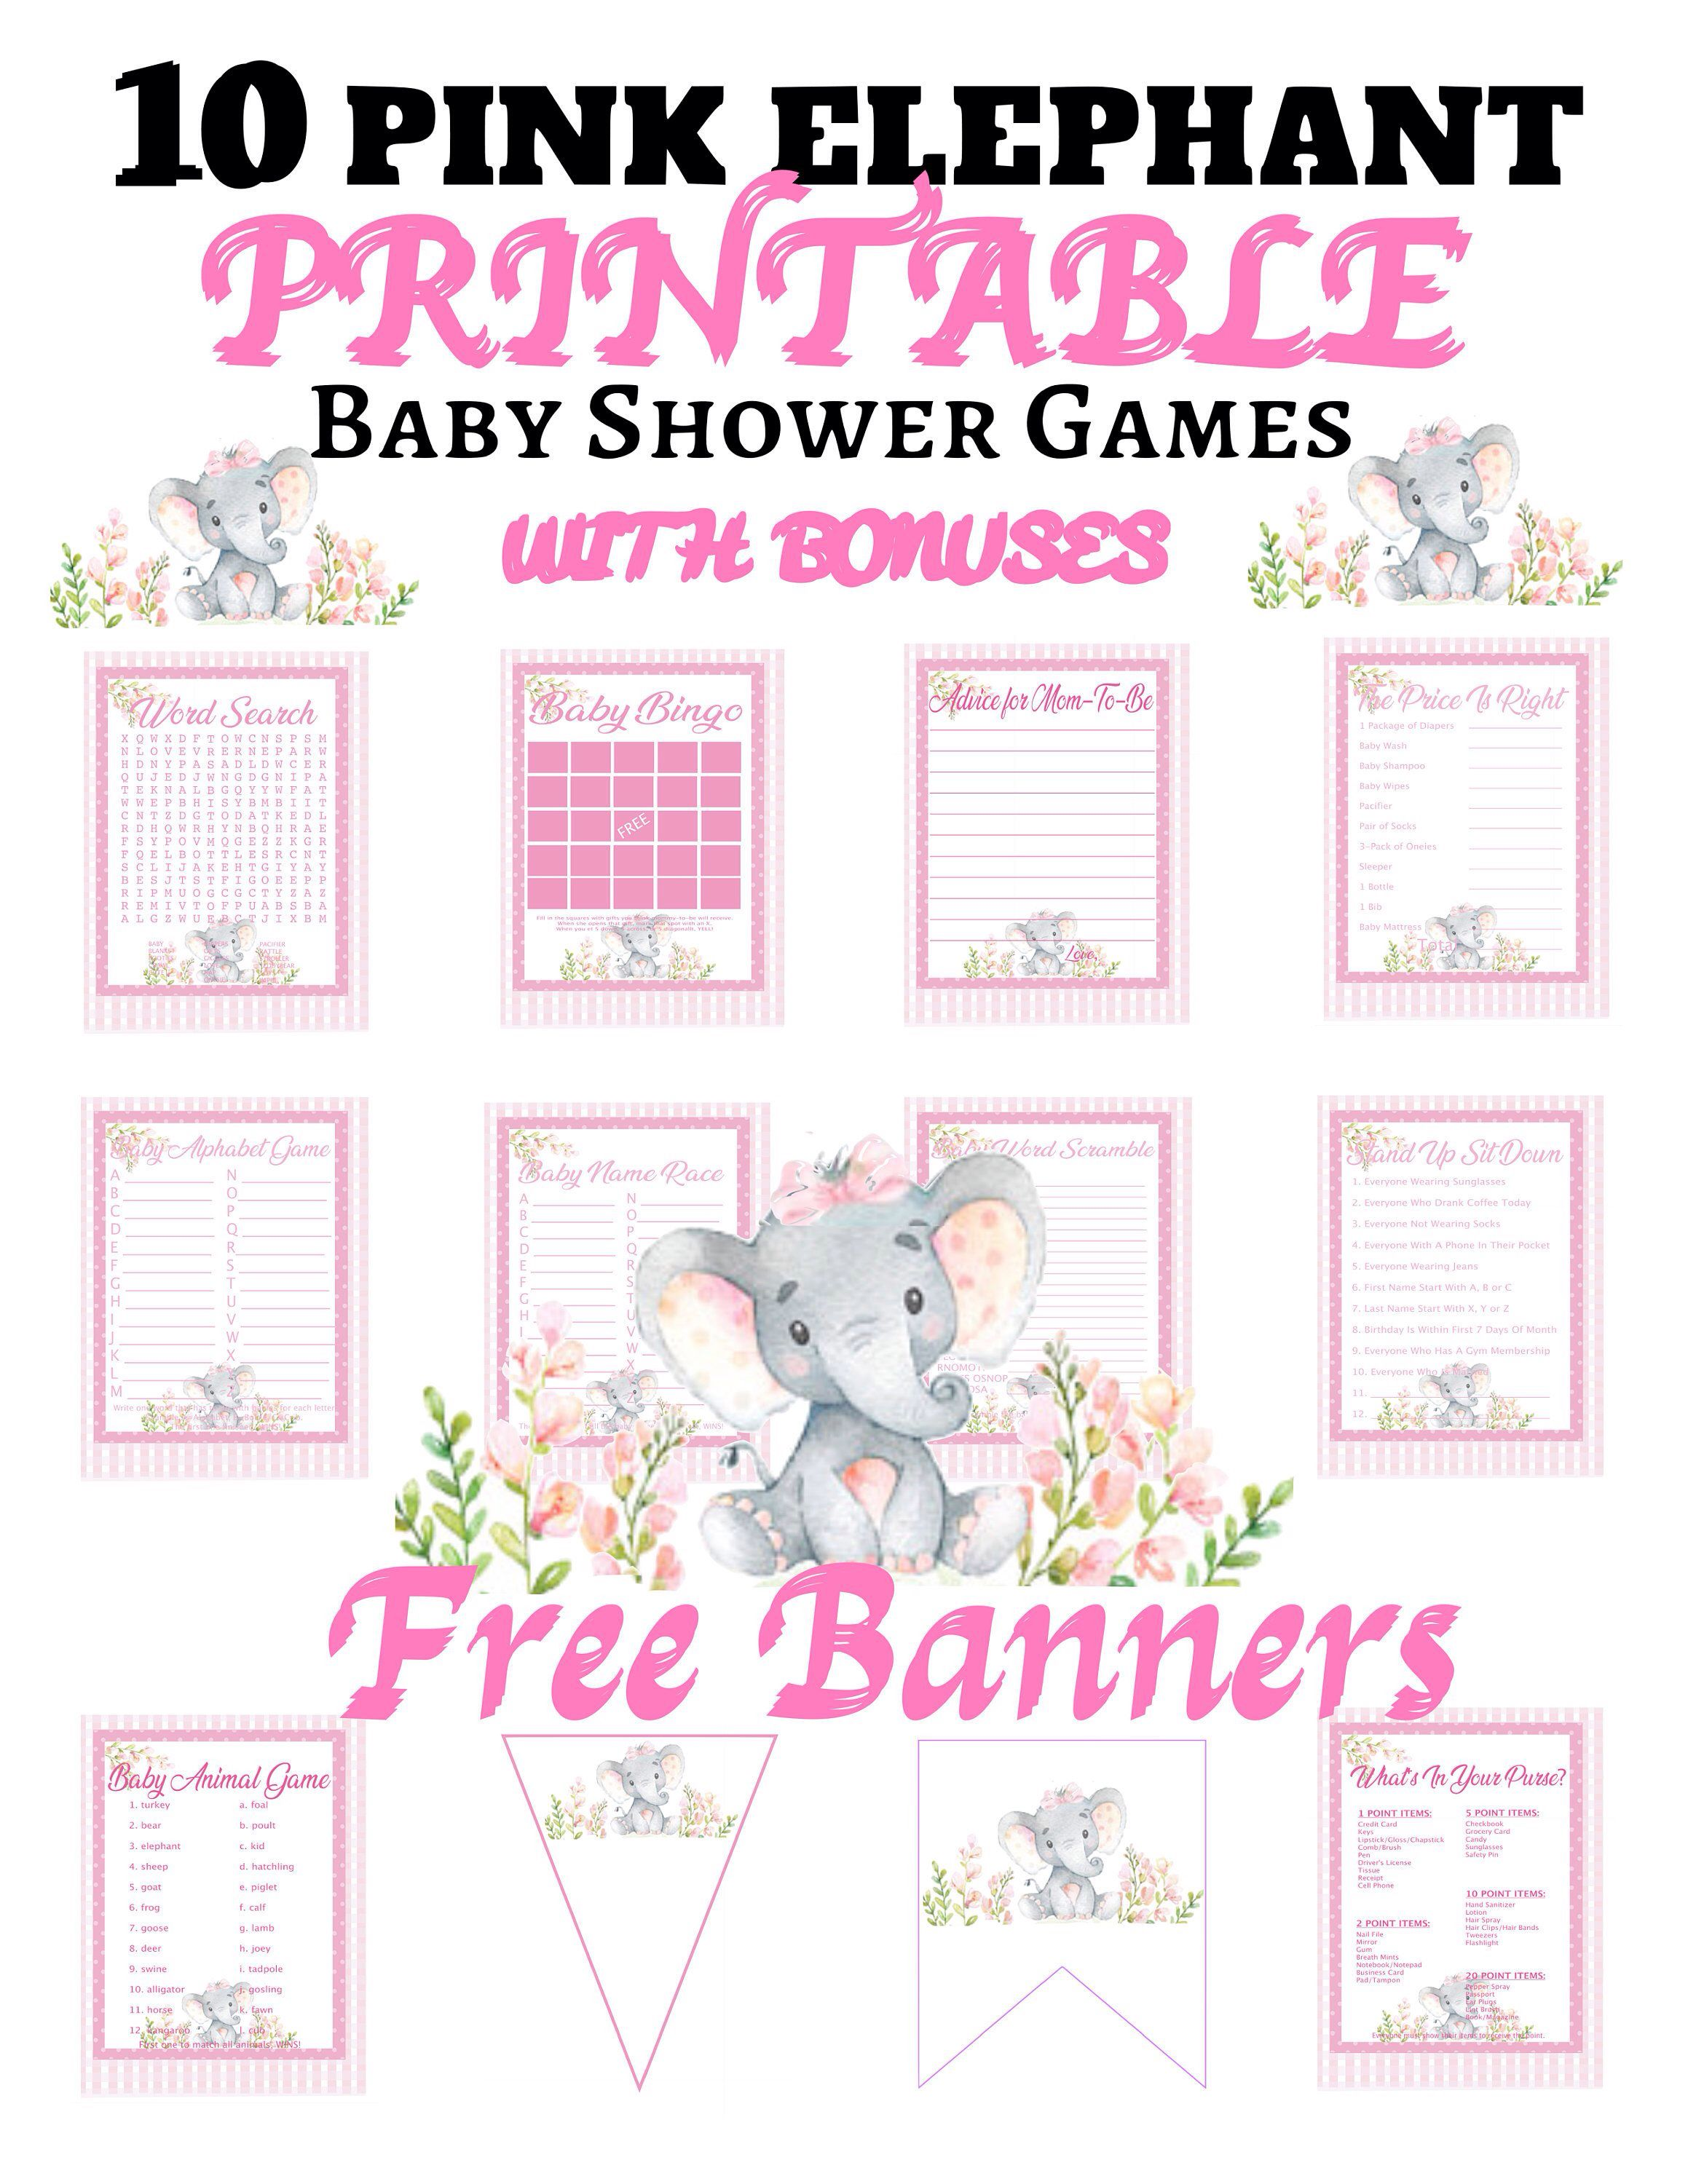 Pink Elephant Baby Shower Free Printables : elephant, shower, printables, Elephant, Shower, Games/10, Set/PLUS, BANNERS/Instant, Printable, Downloa…, Elephants, Shower,, Banner, Girl,